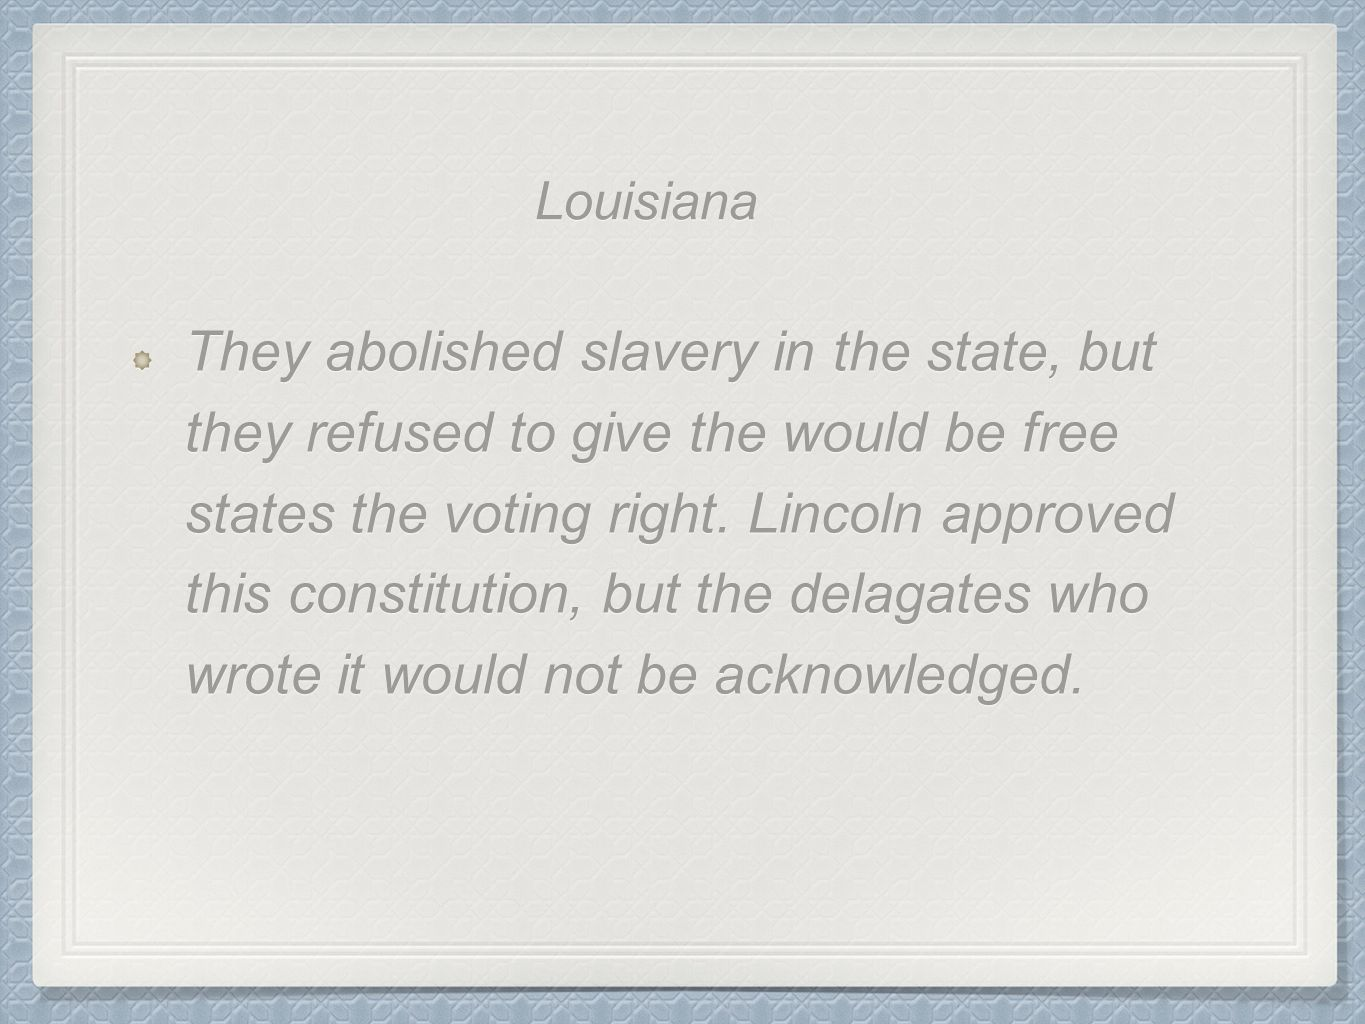 They abolished slavery in the state, but they refused to give the would be free states the voting right. Lincoln approved this constitution, but the delagates who wrote it would not be acknowledged.